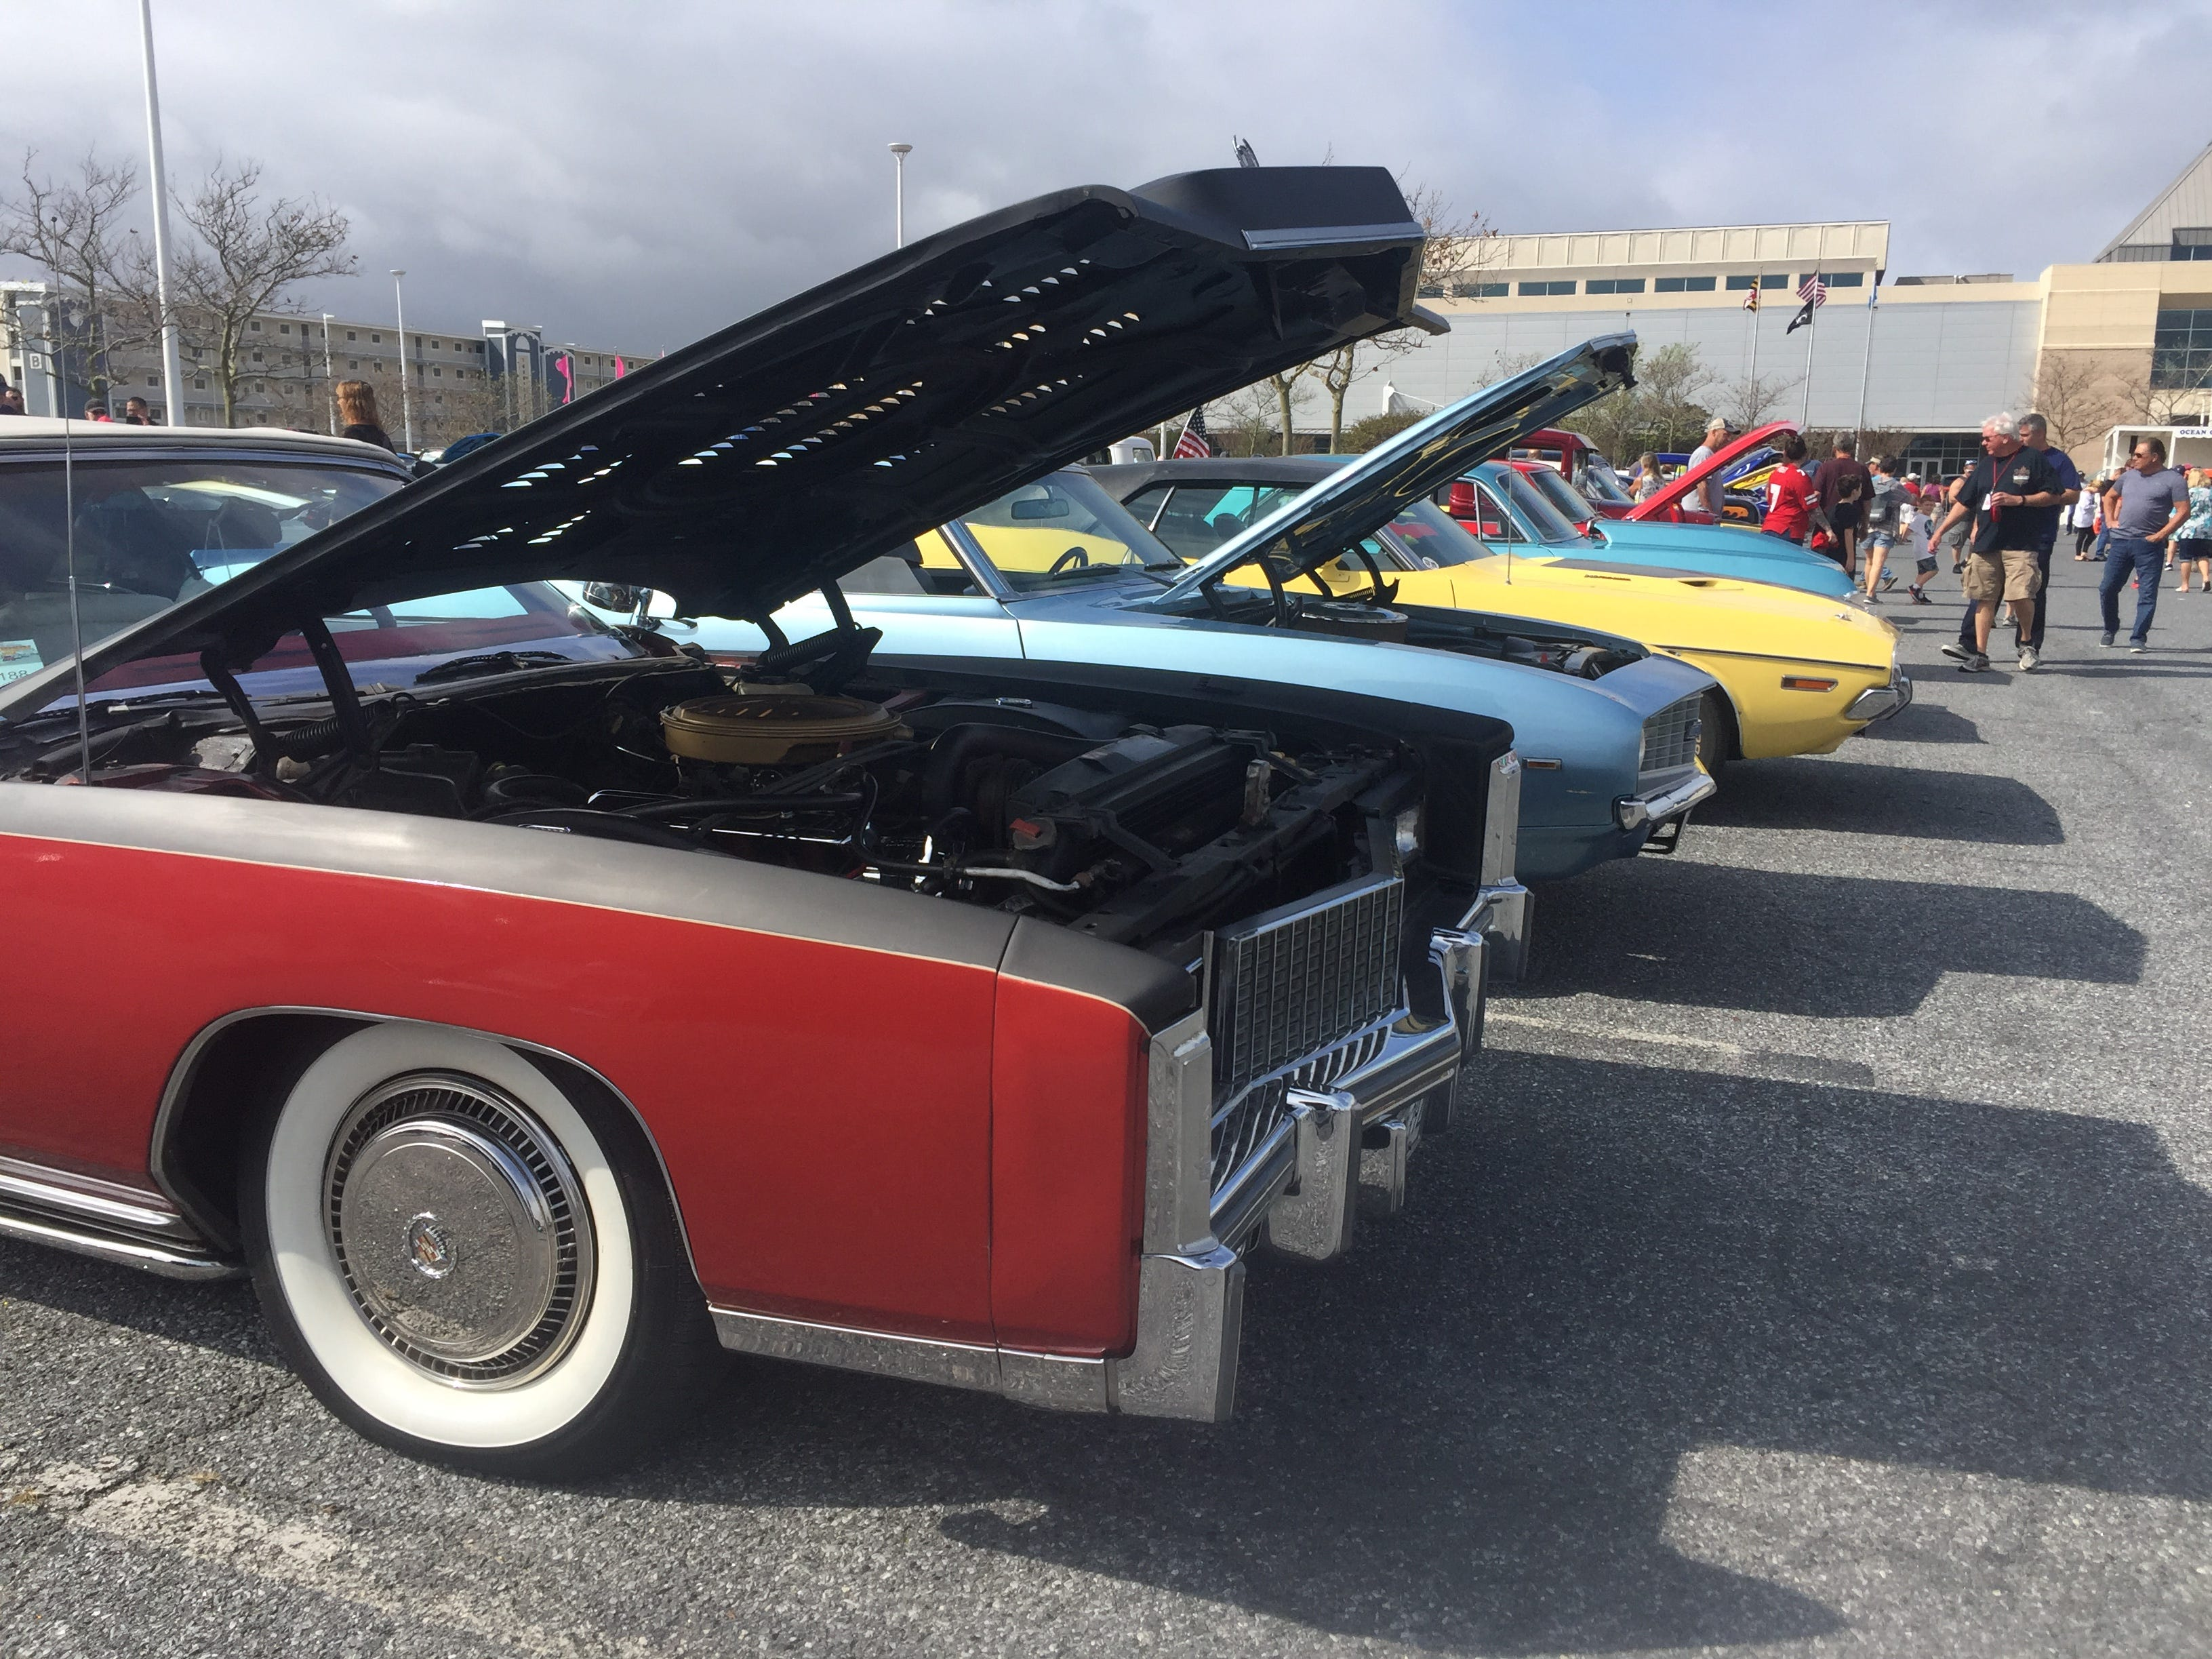 Unlike last weekend when the official H2O International event took over Ocean City, the Endless Summer Cruisin' car show is a town sanctioned event.